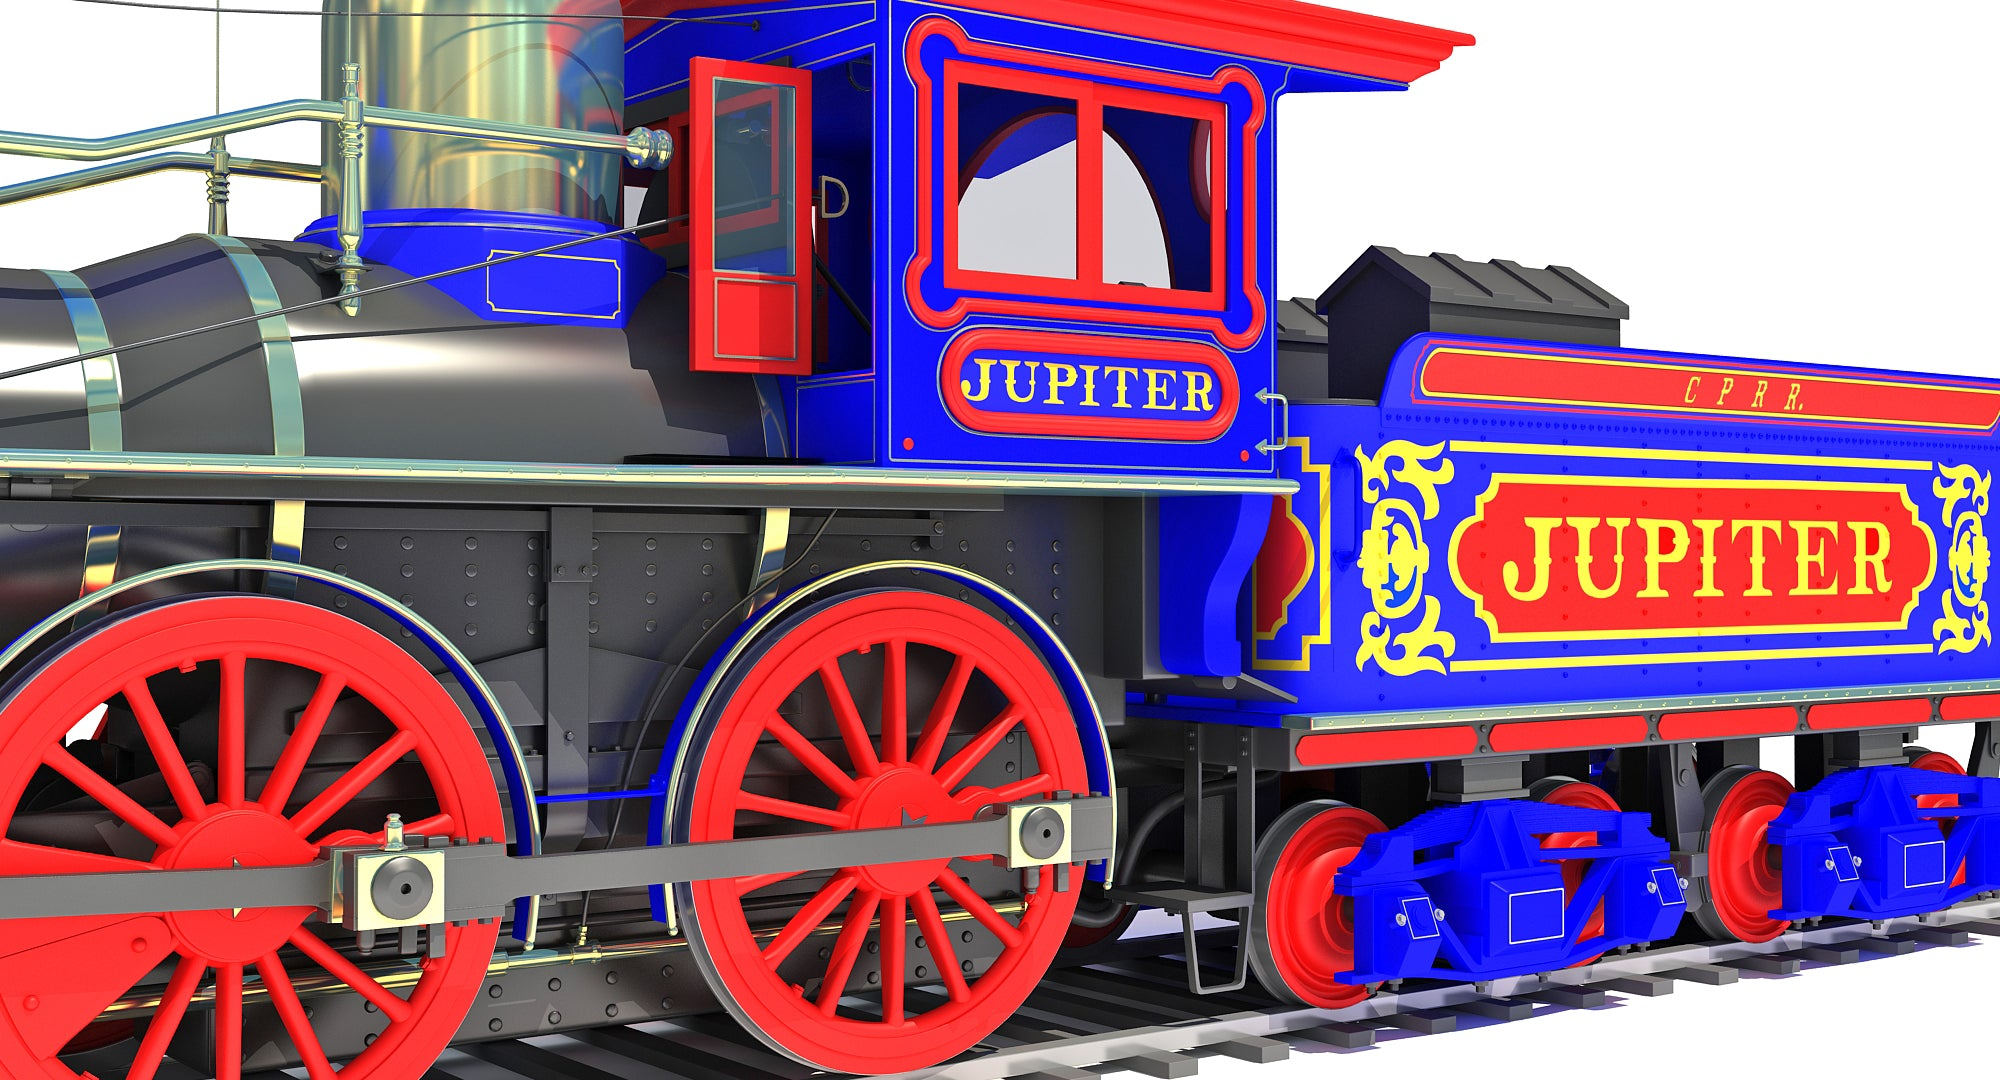 Jupiter Steam Locomotive Train 3D Model